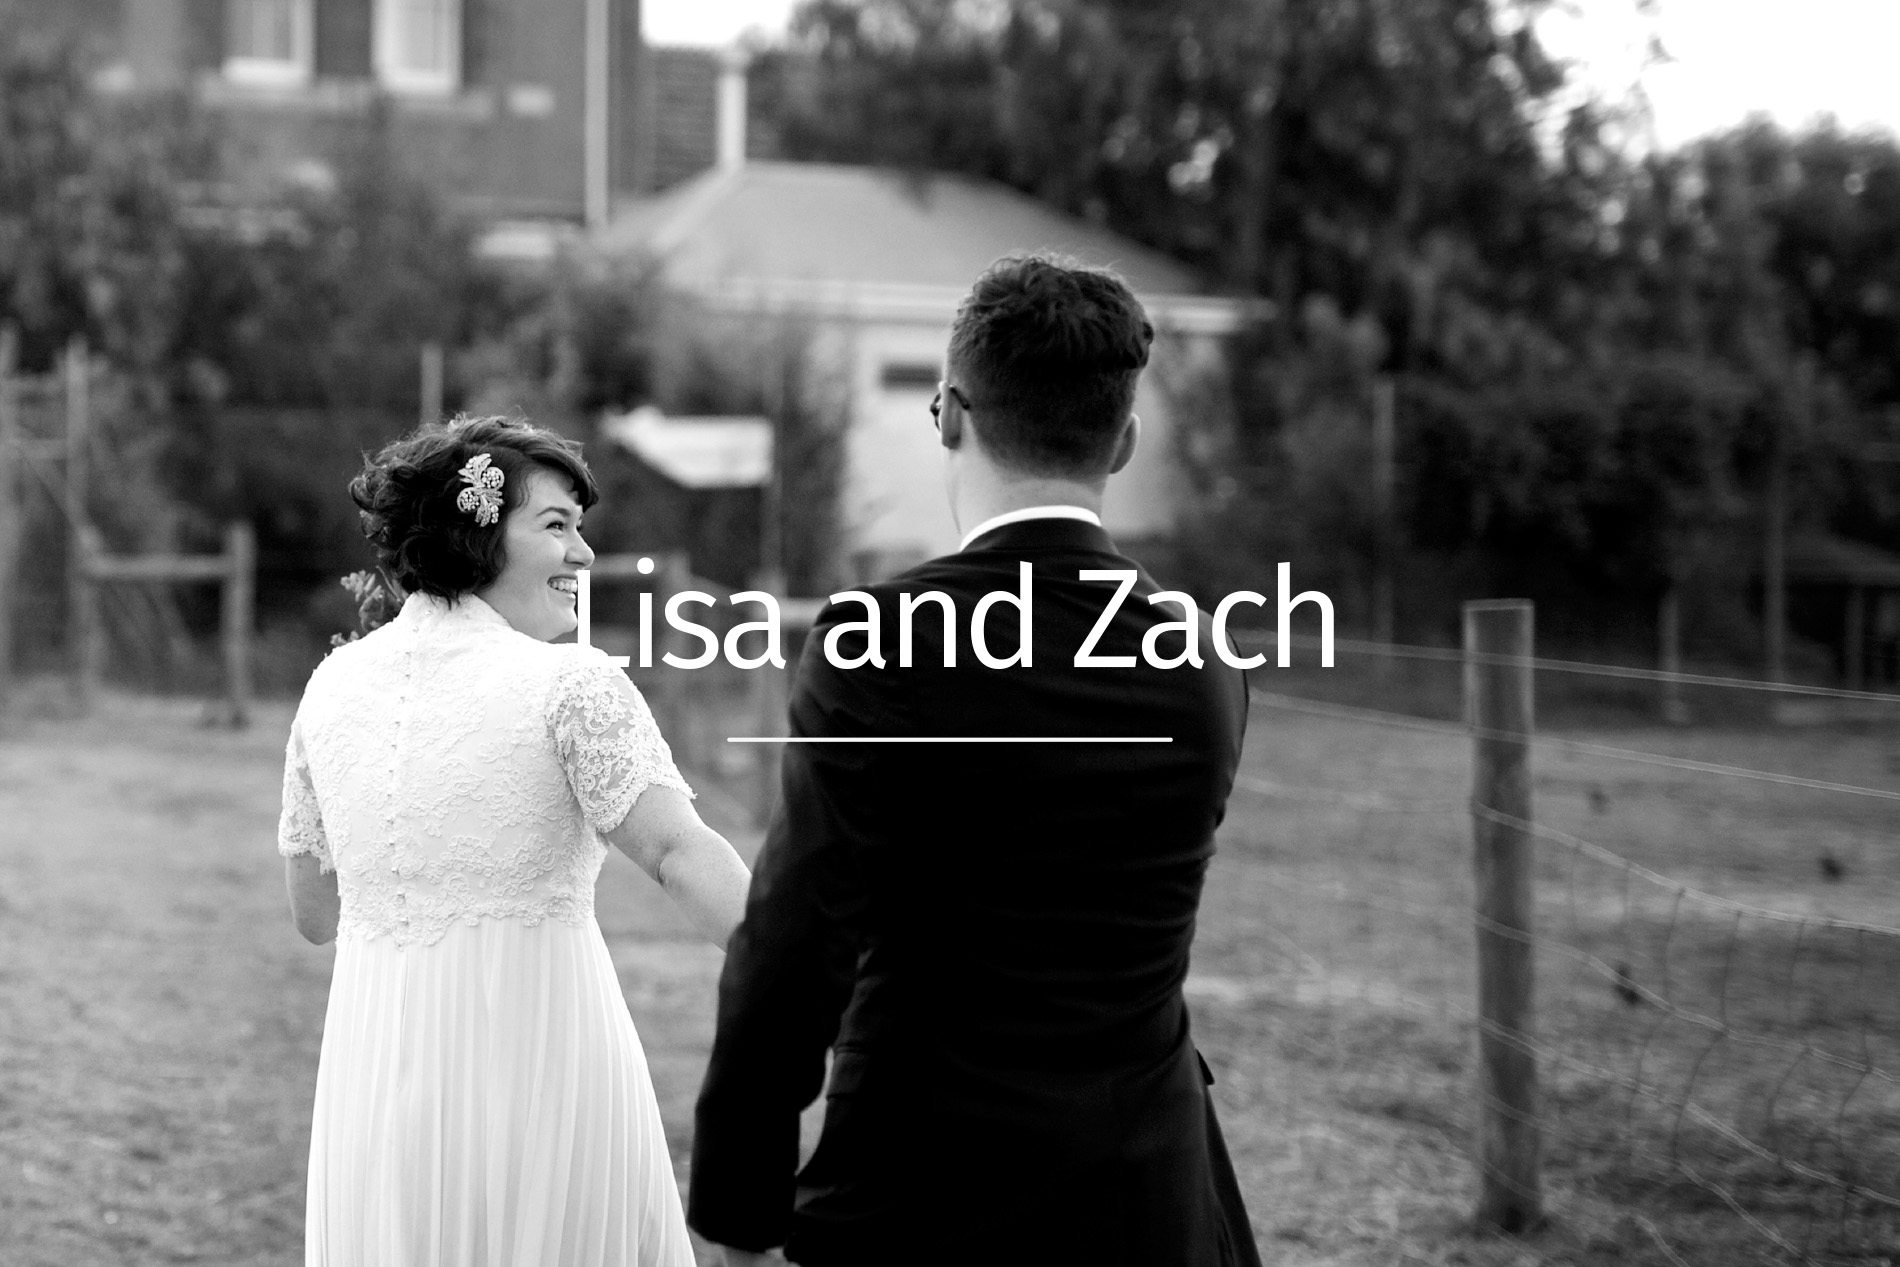 Lisa and Zach